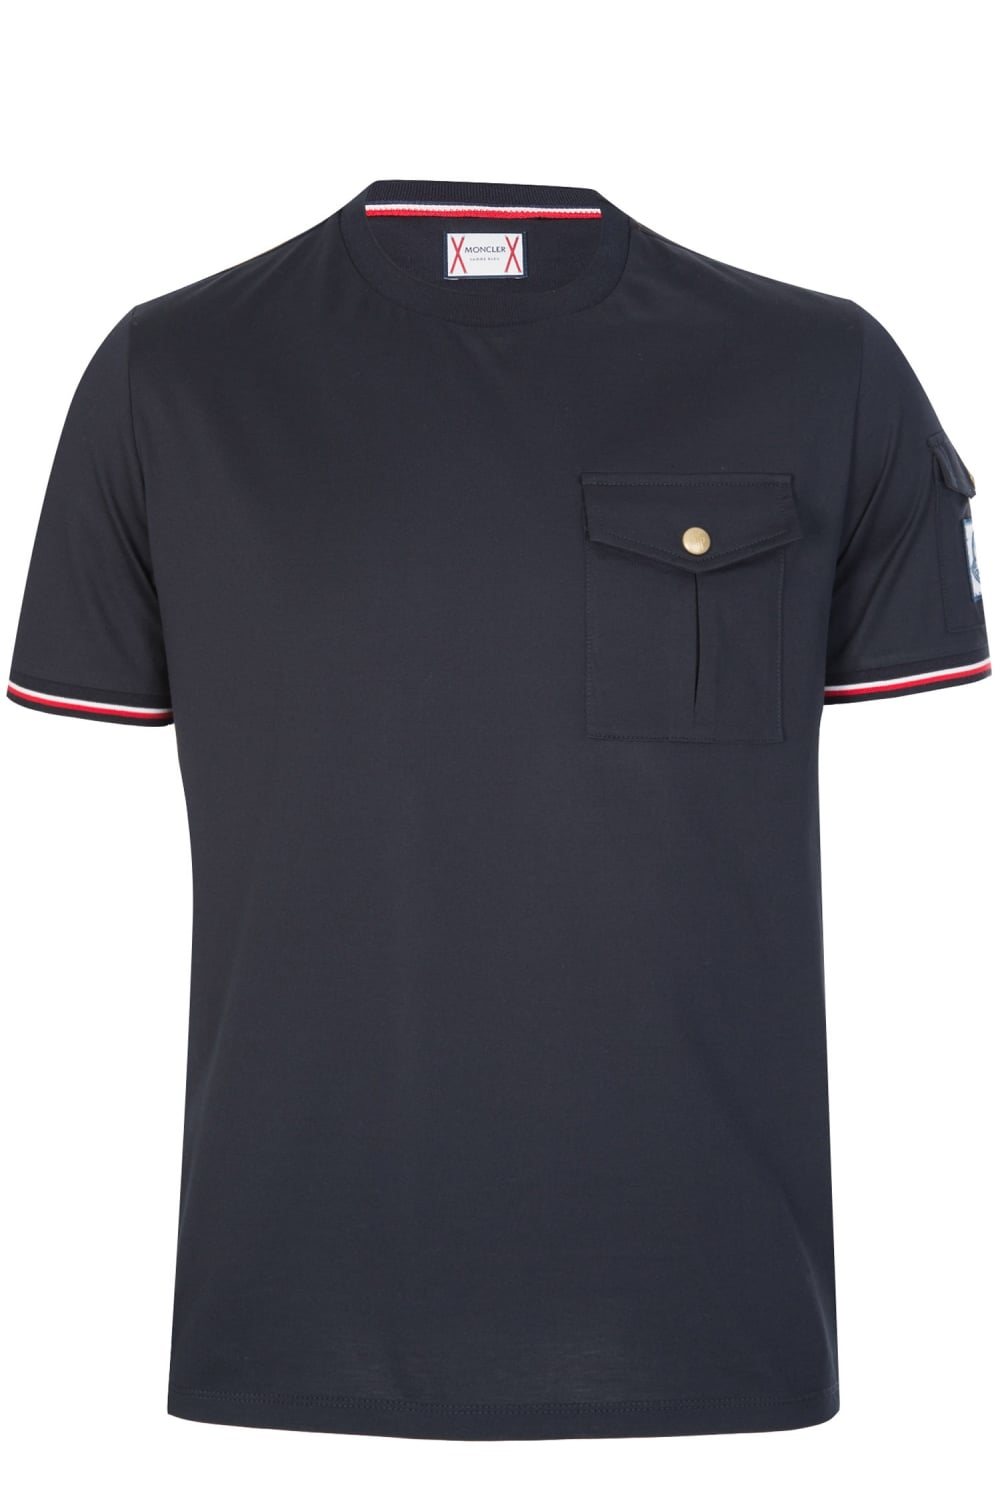 moncler sleeve chest pocket t shirt navy. Black Bedroom Furniture Sets. Home Design Ideas